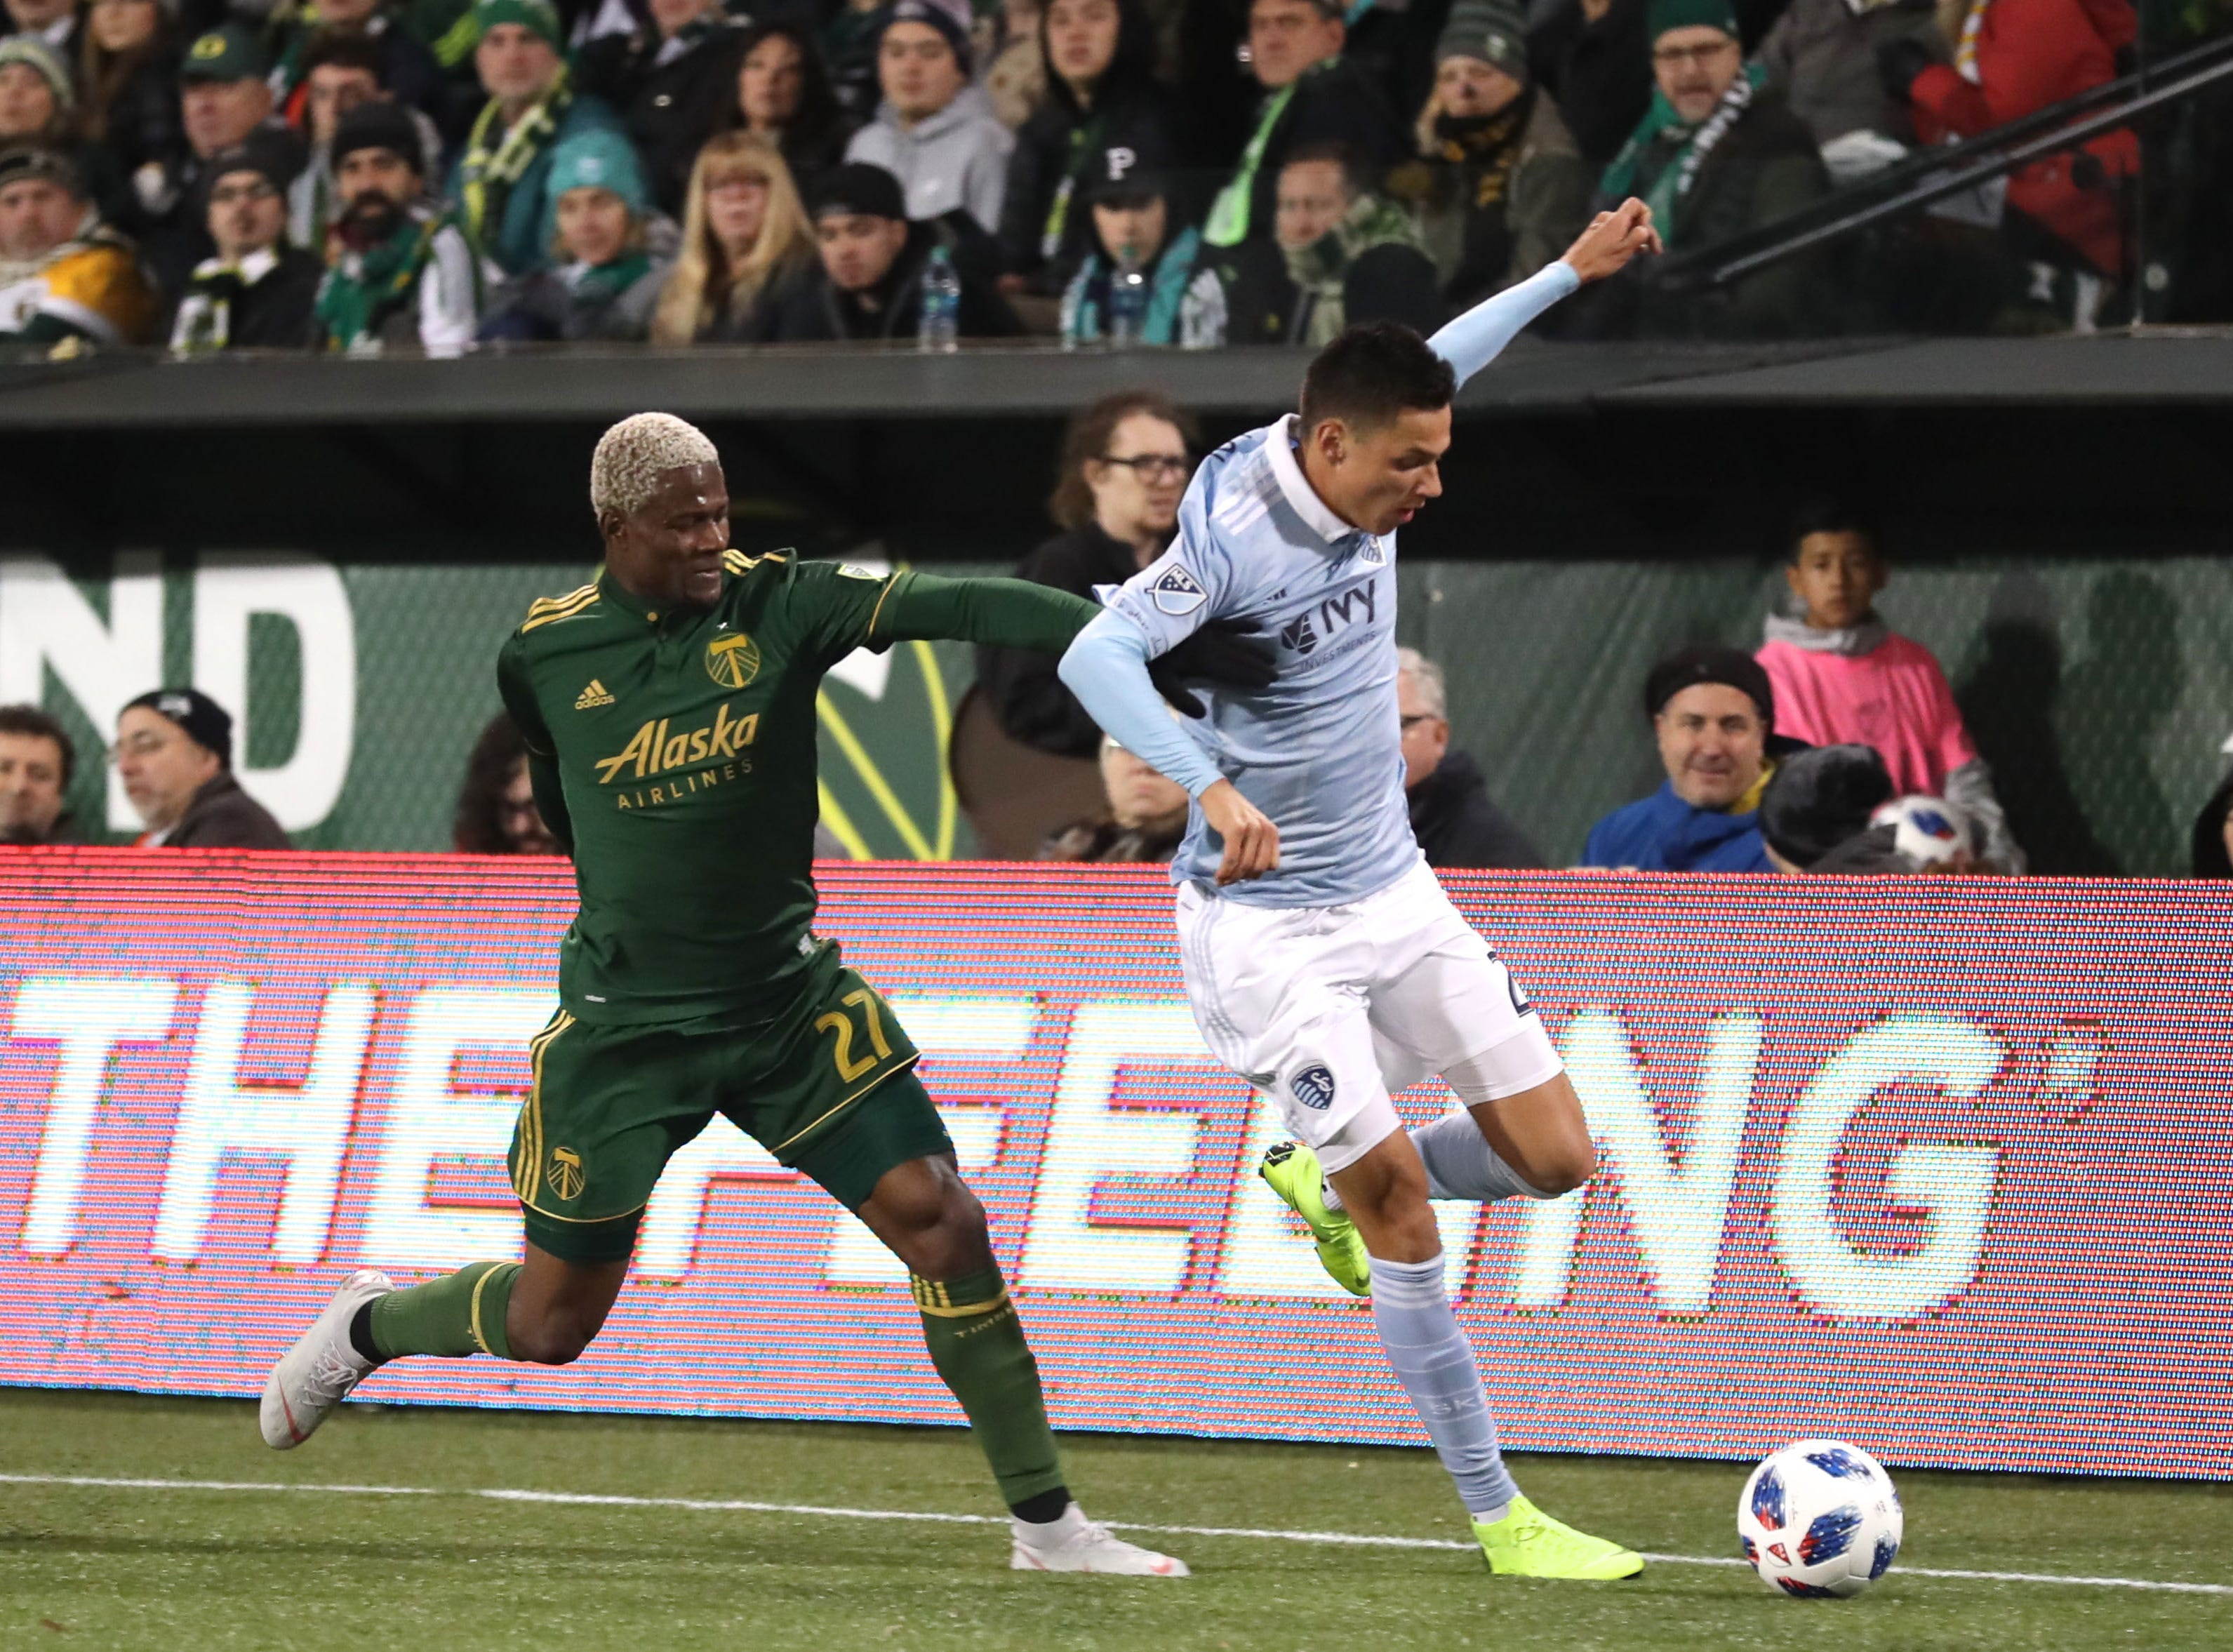 Nov 25, 2018; Portland, OR, USA; Sporting Kansas City forward Daniel Salloi (20) runs by Portland Timbers forward Dairon Asprilla (27) in the first half of the first leg of the MLS Western Conference Championship at Providence Park. Mandatory Credit: Jaime Valdez-USA TODAY Sports